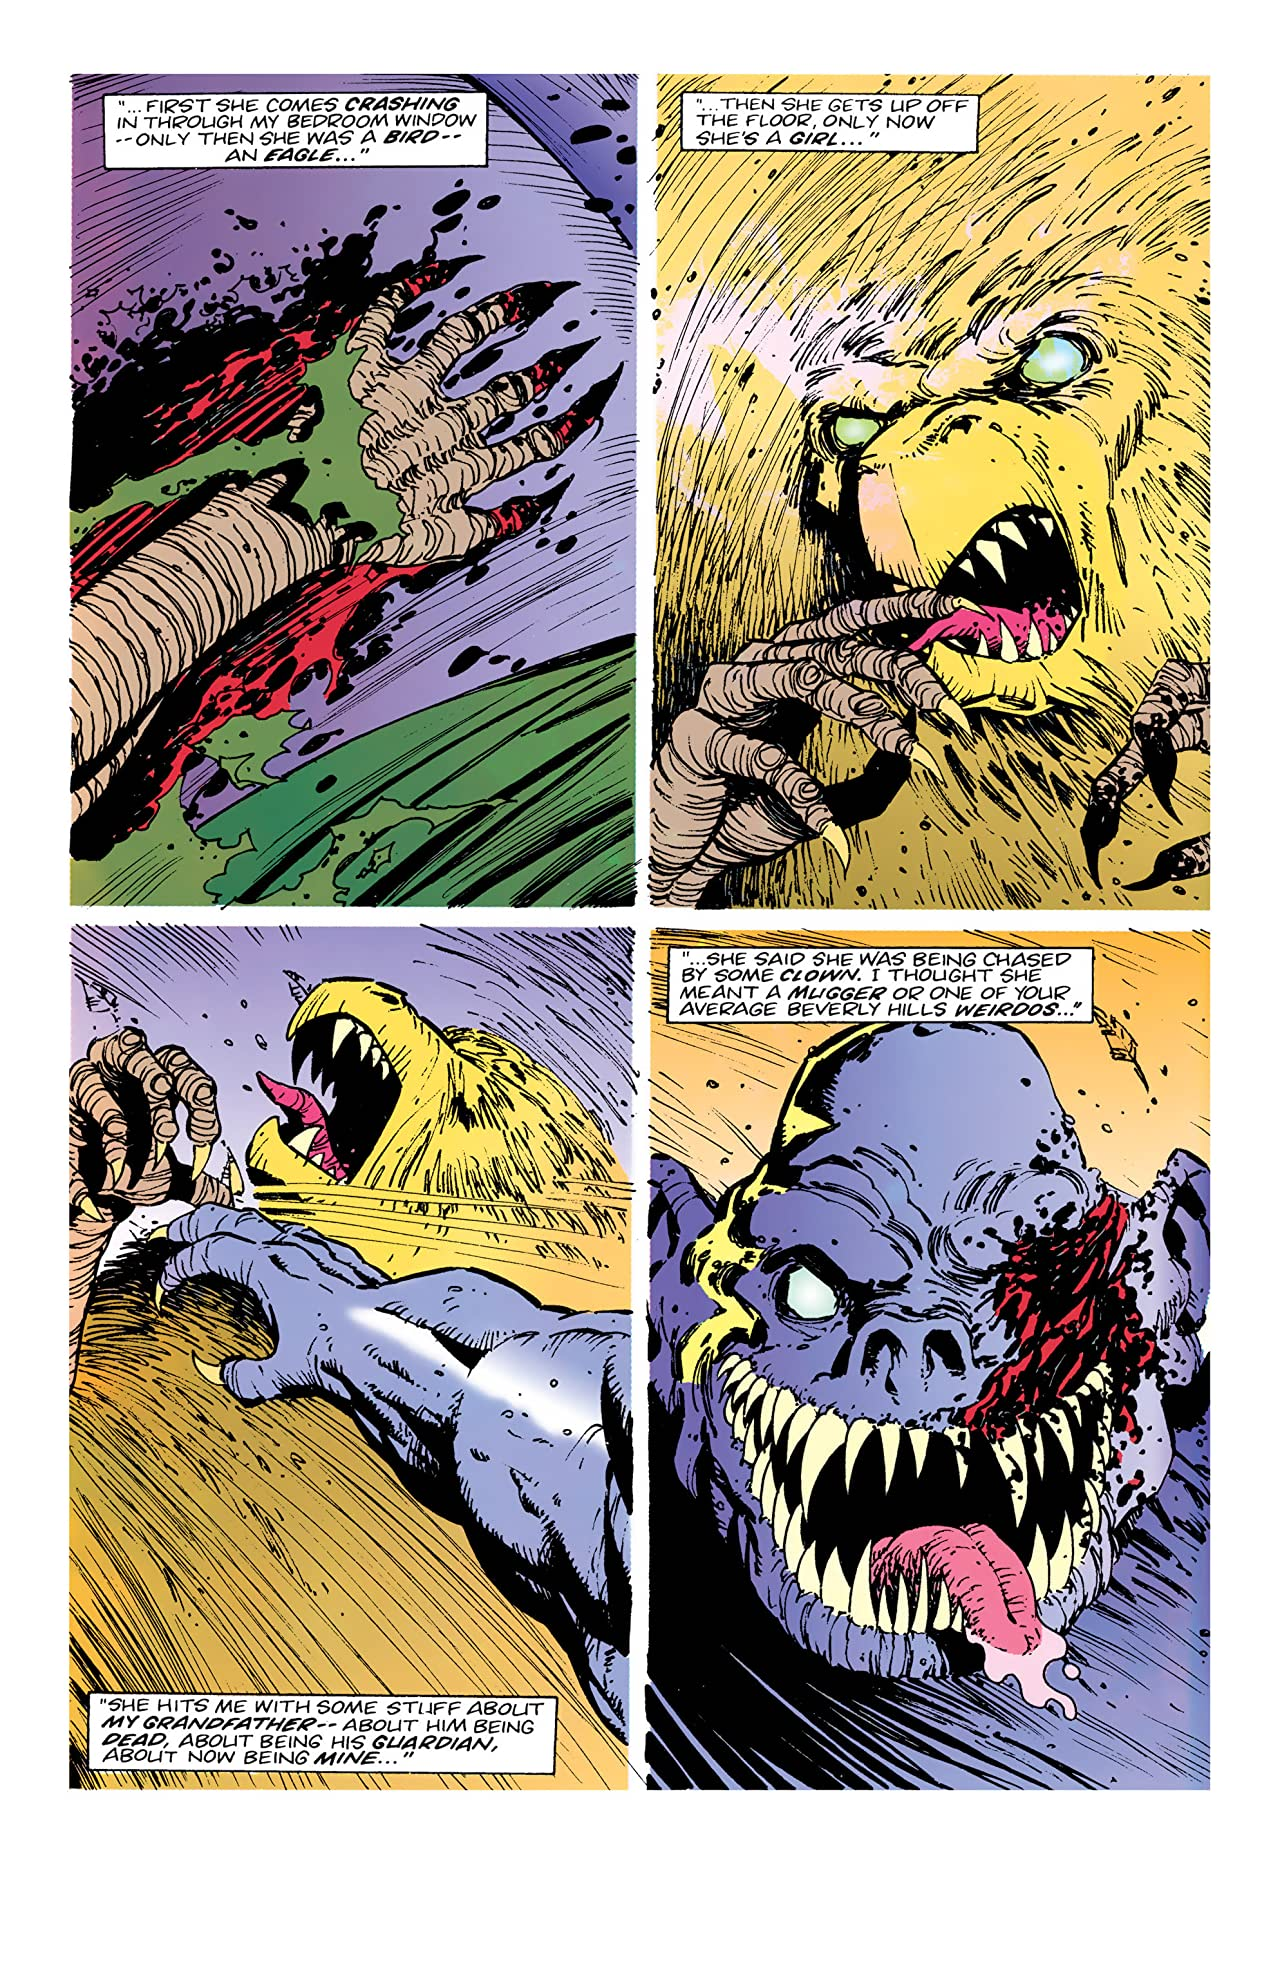 Dances With Demons (1993) #2 (of 4)